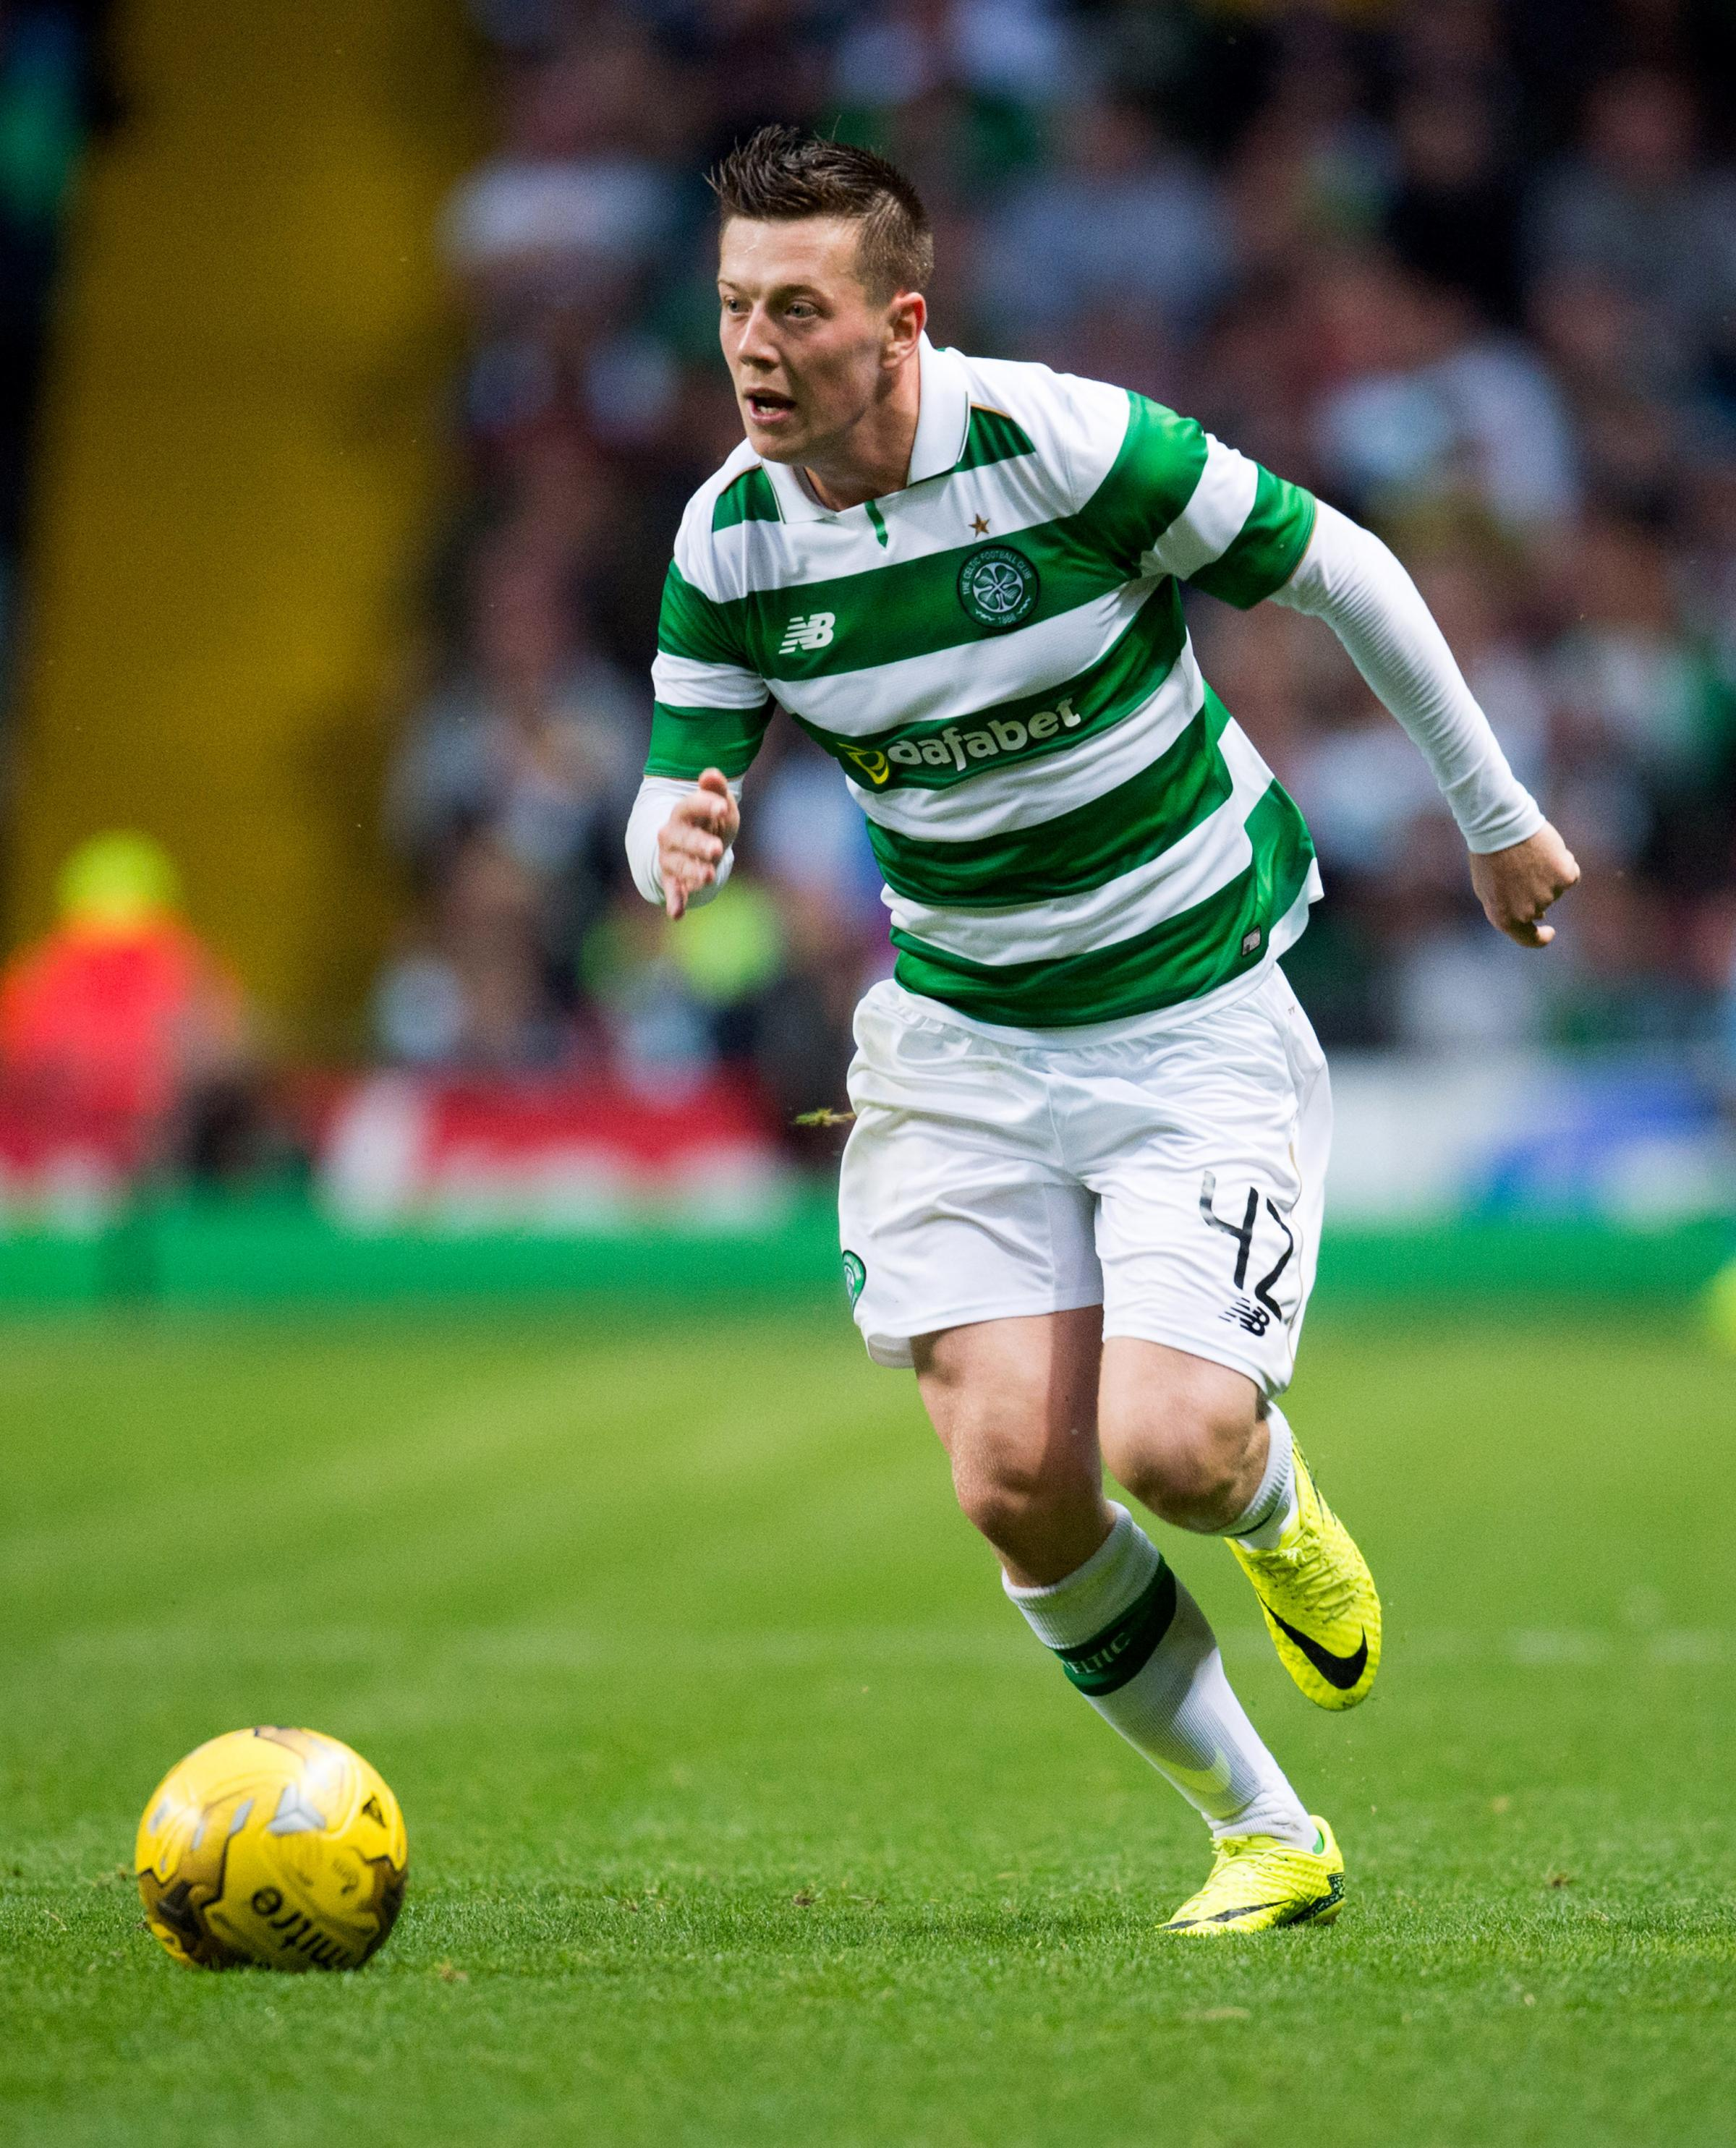 Callum McGregor is set to make his 100th appearance for Celtic this weekend